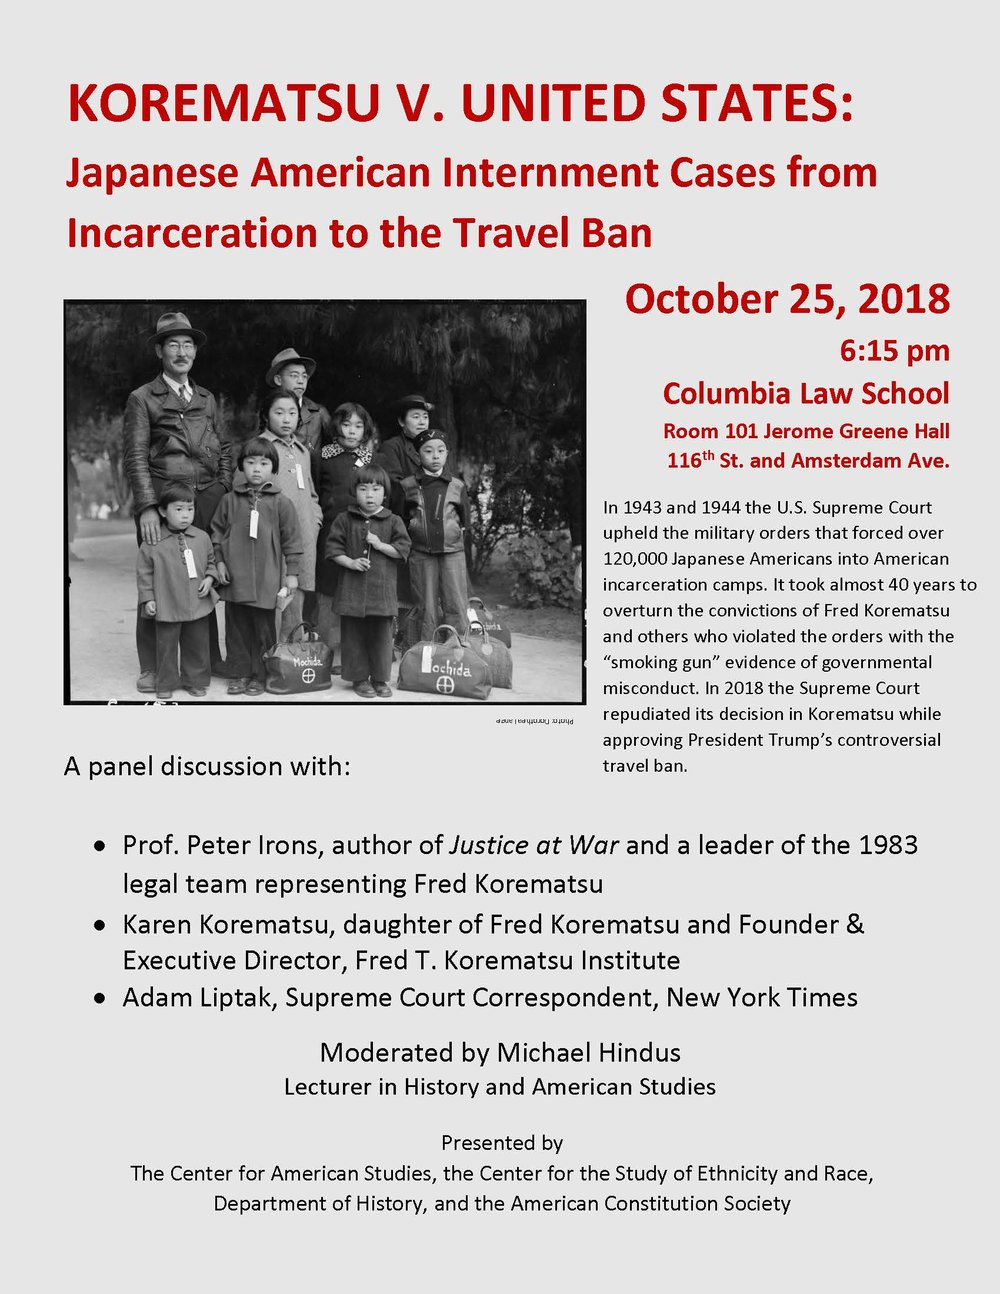 Columbia Law School Event Oct 25 Flyer.jpg